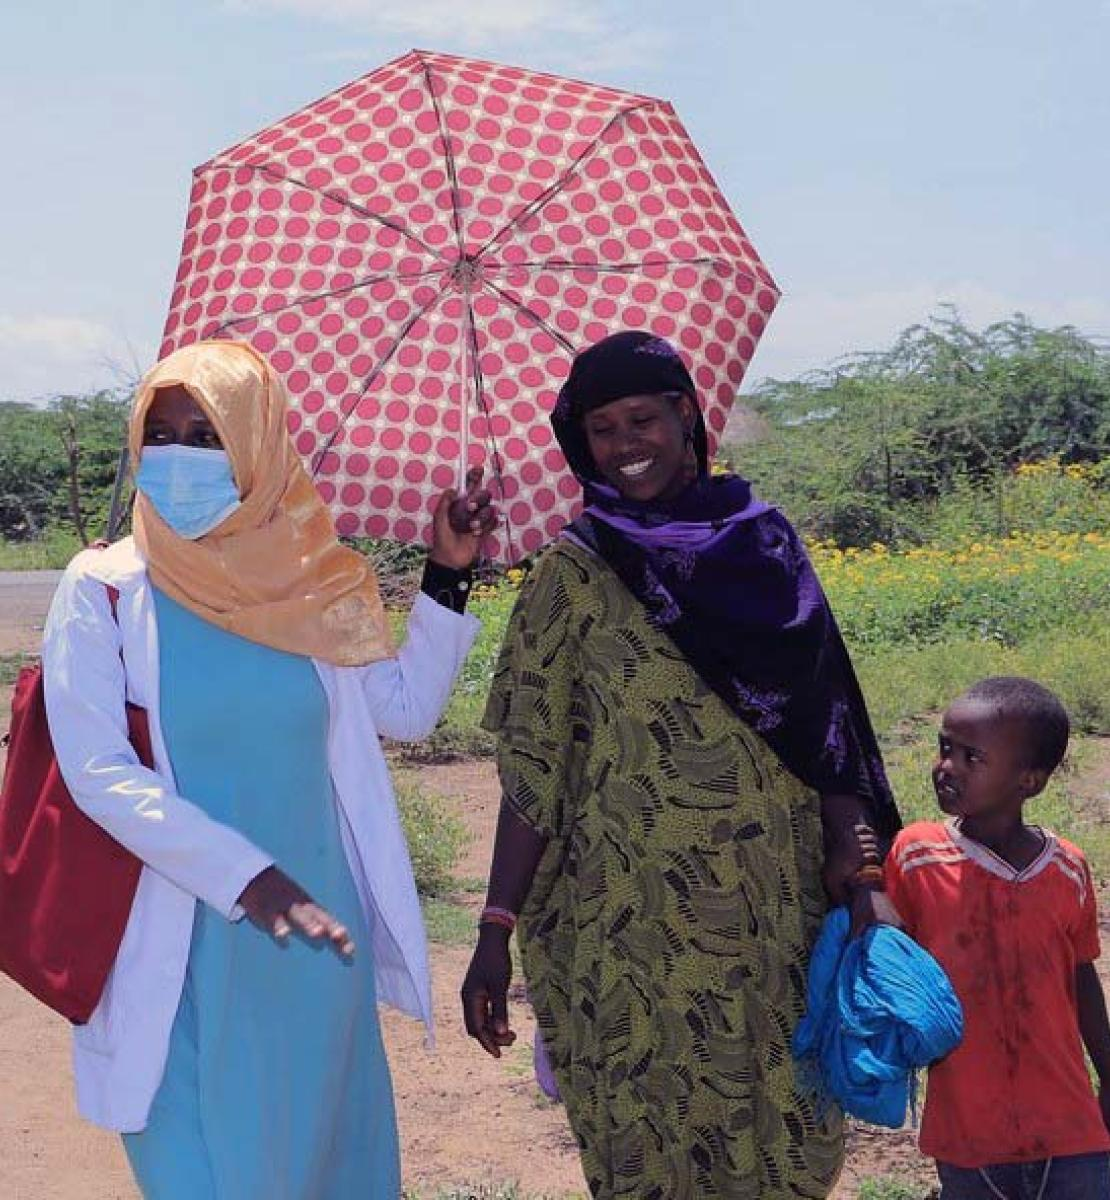 One woman wearing a face masks holds an umbrella as she walks side-by-side with a woman and her child.